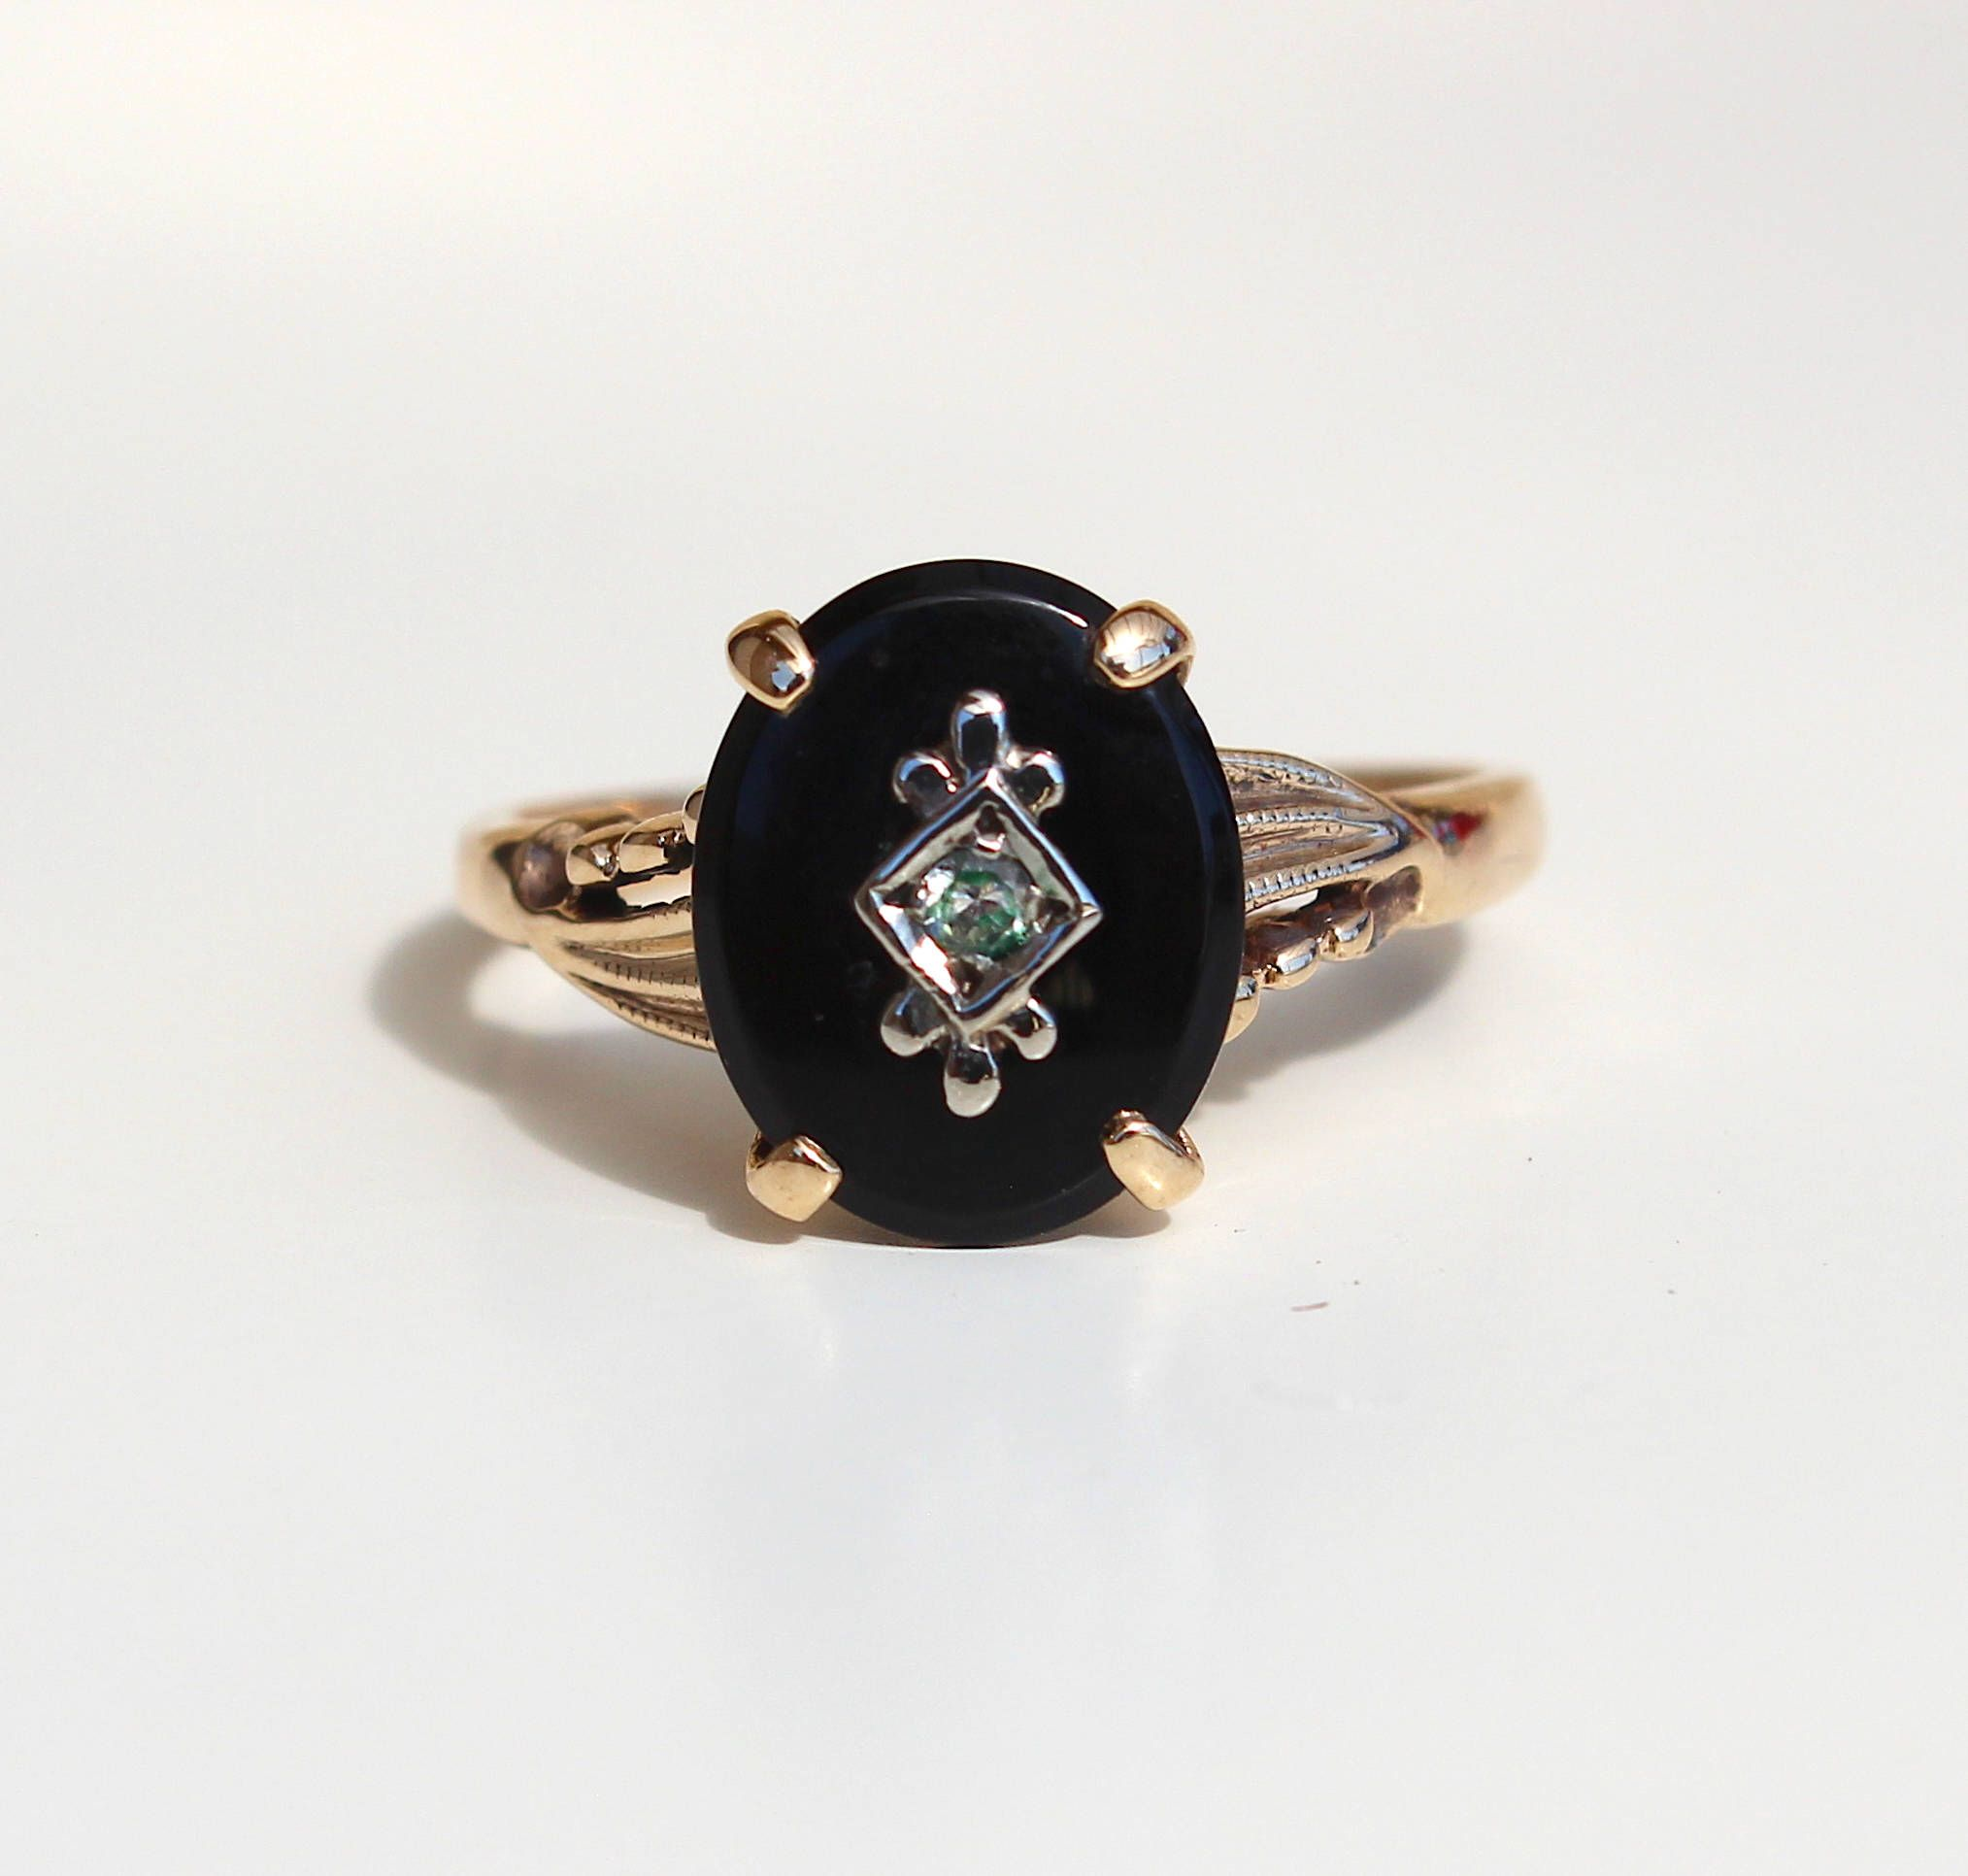 f3100f86b98 Vintage Art Deco 10k Yellow Gold Black Onyx Diamond Ring - 1930s ...